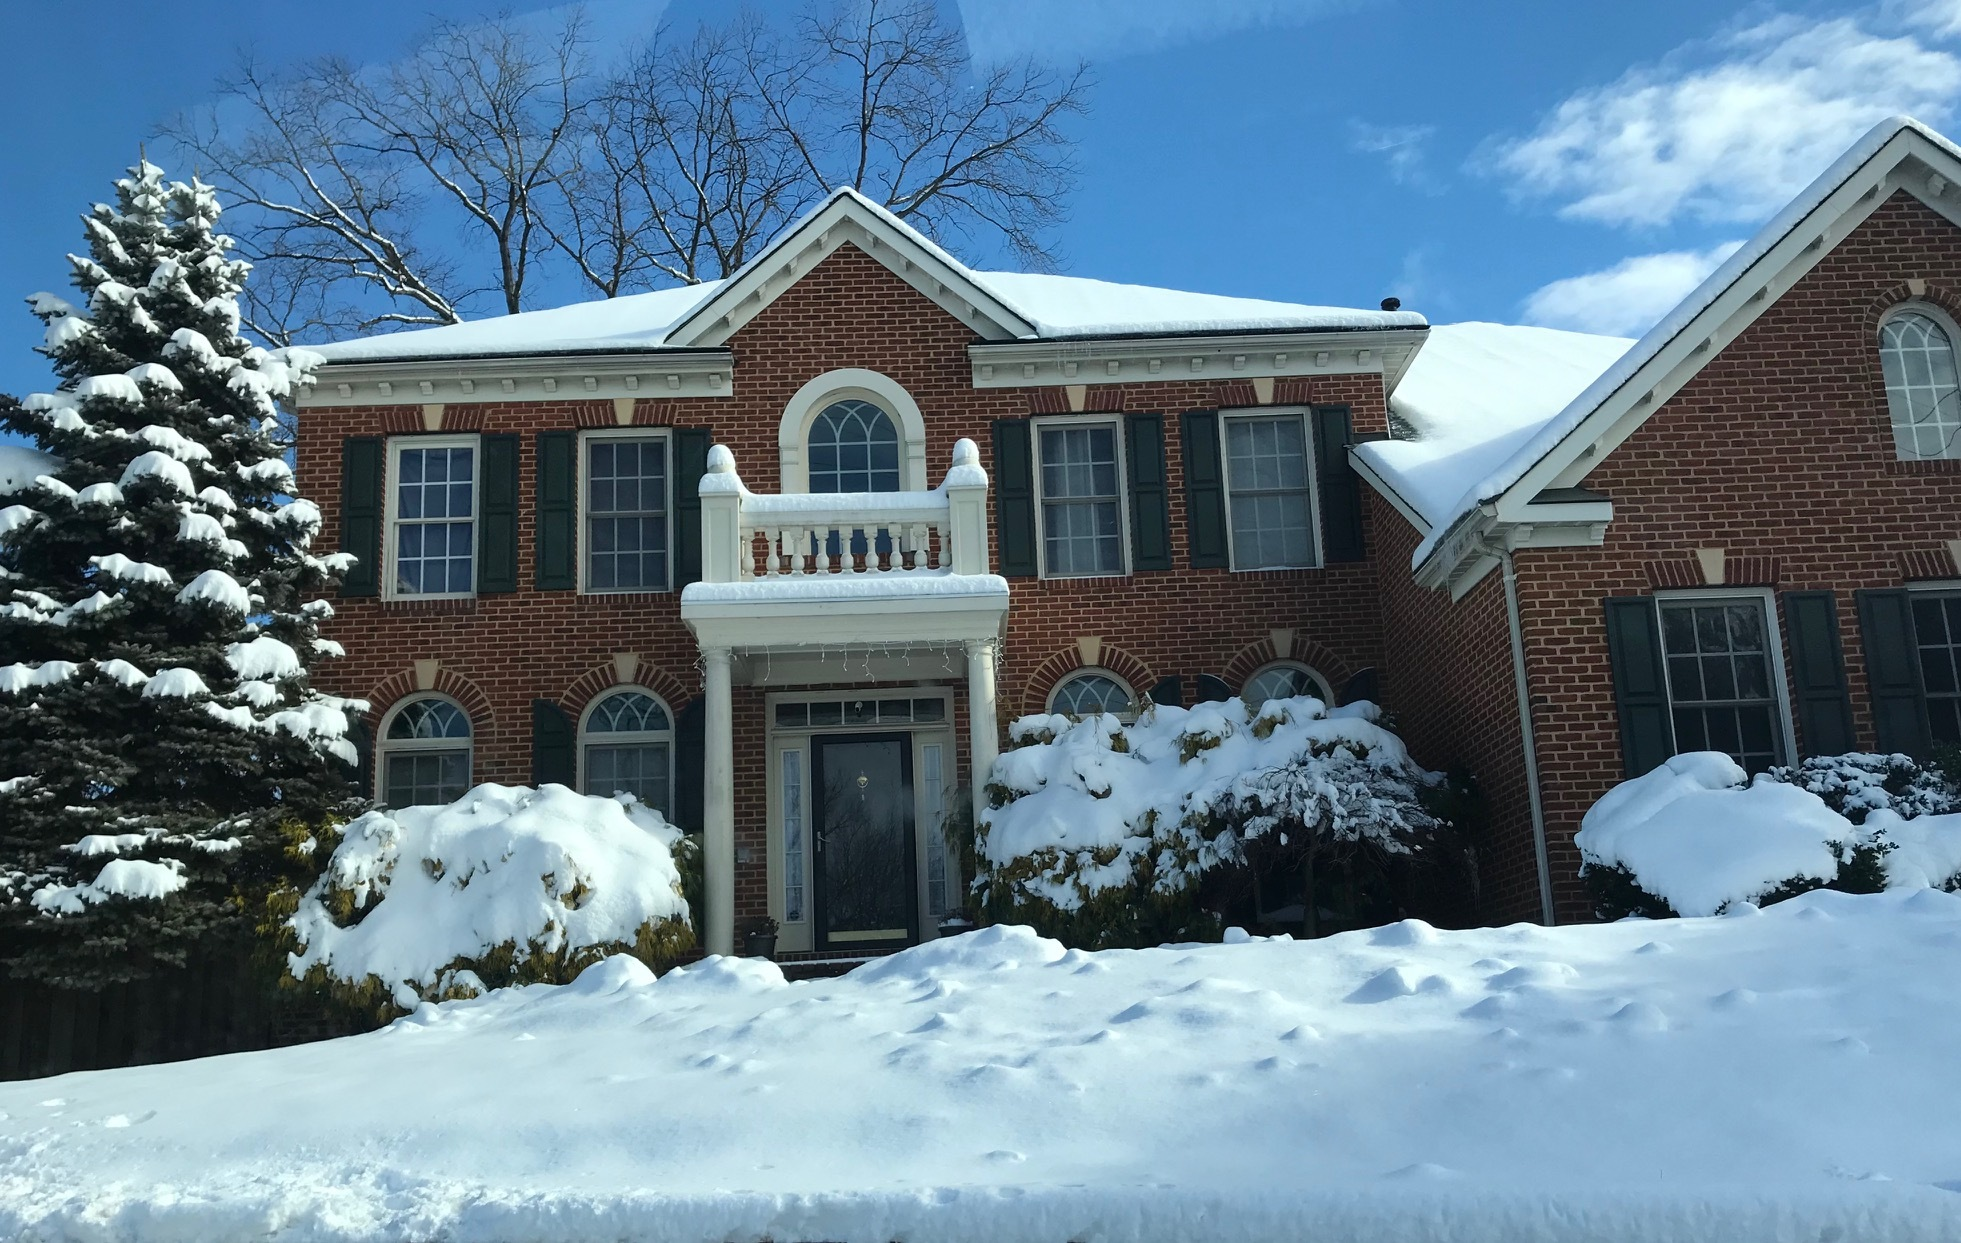 Kingstowne home image winter